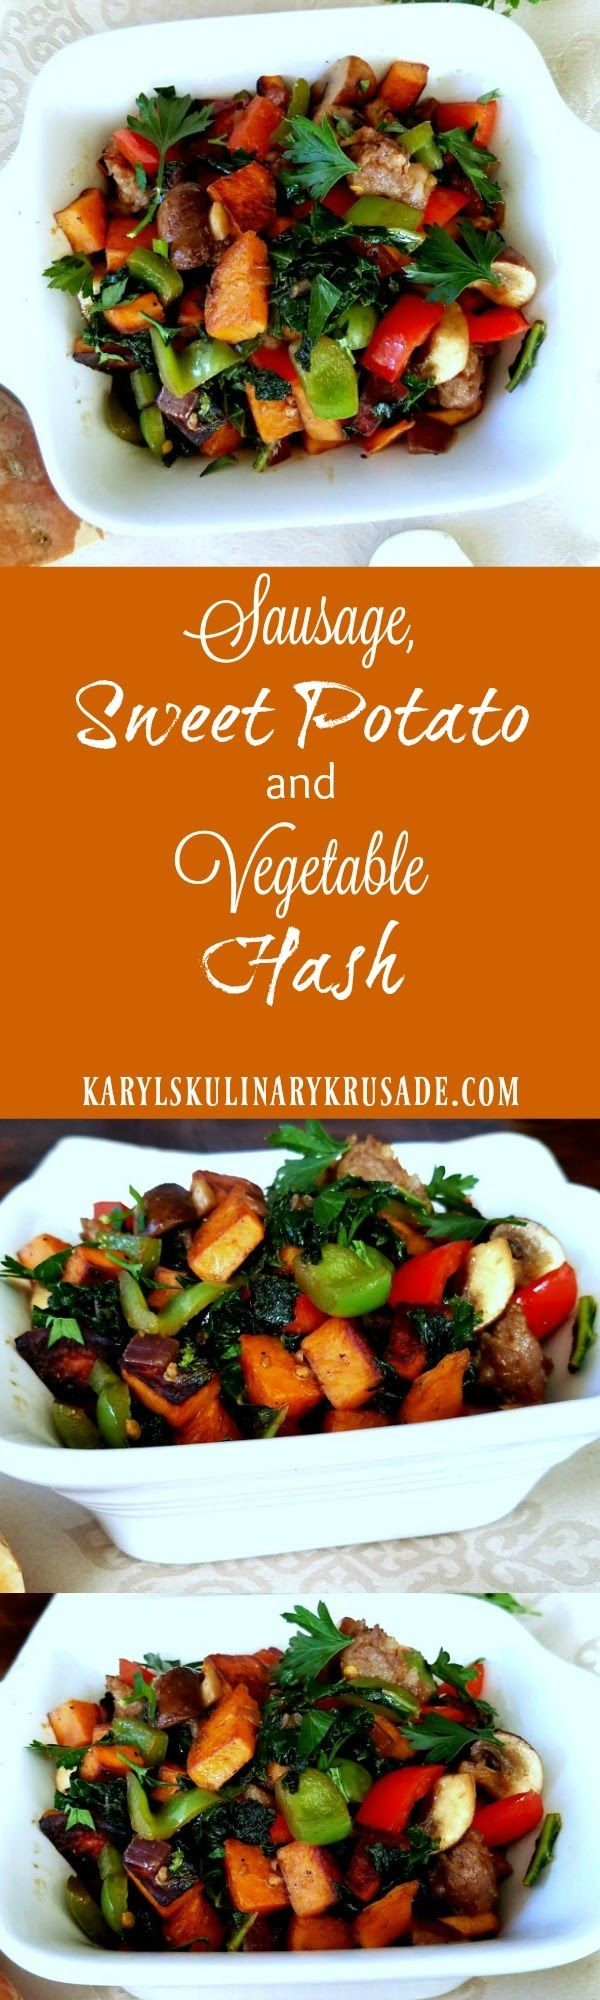 Sausage, Sweet Potato and Vegetable Hash is a hearty, filling, and delicious dish that still helps you eat a little cleaner. Sauteed sweet potatoes and bright bell peppers are such a great mix with spicy Italian Sausage.